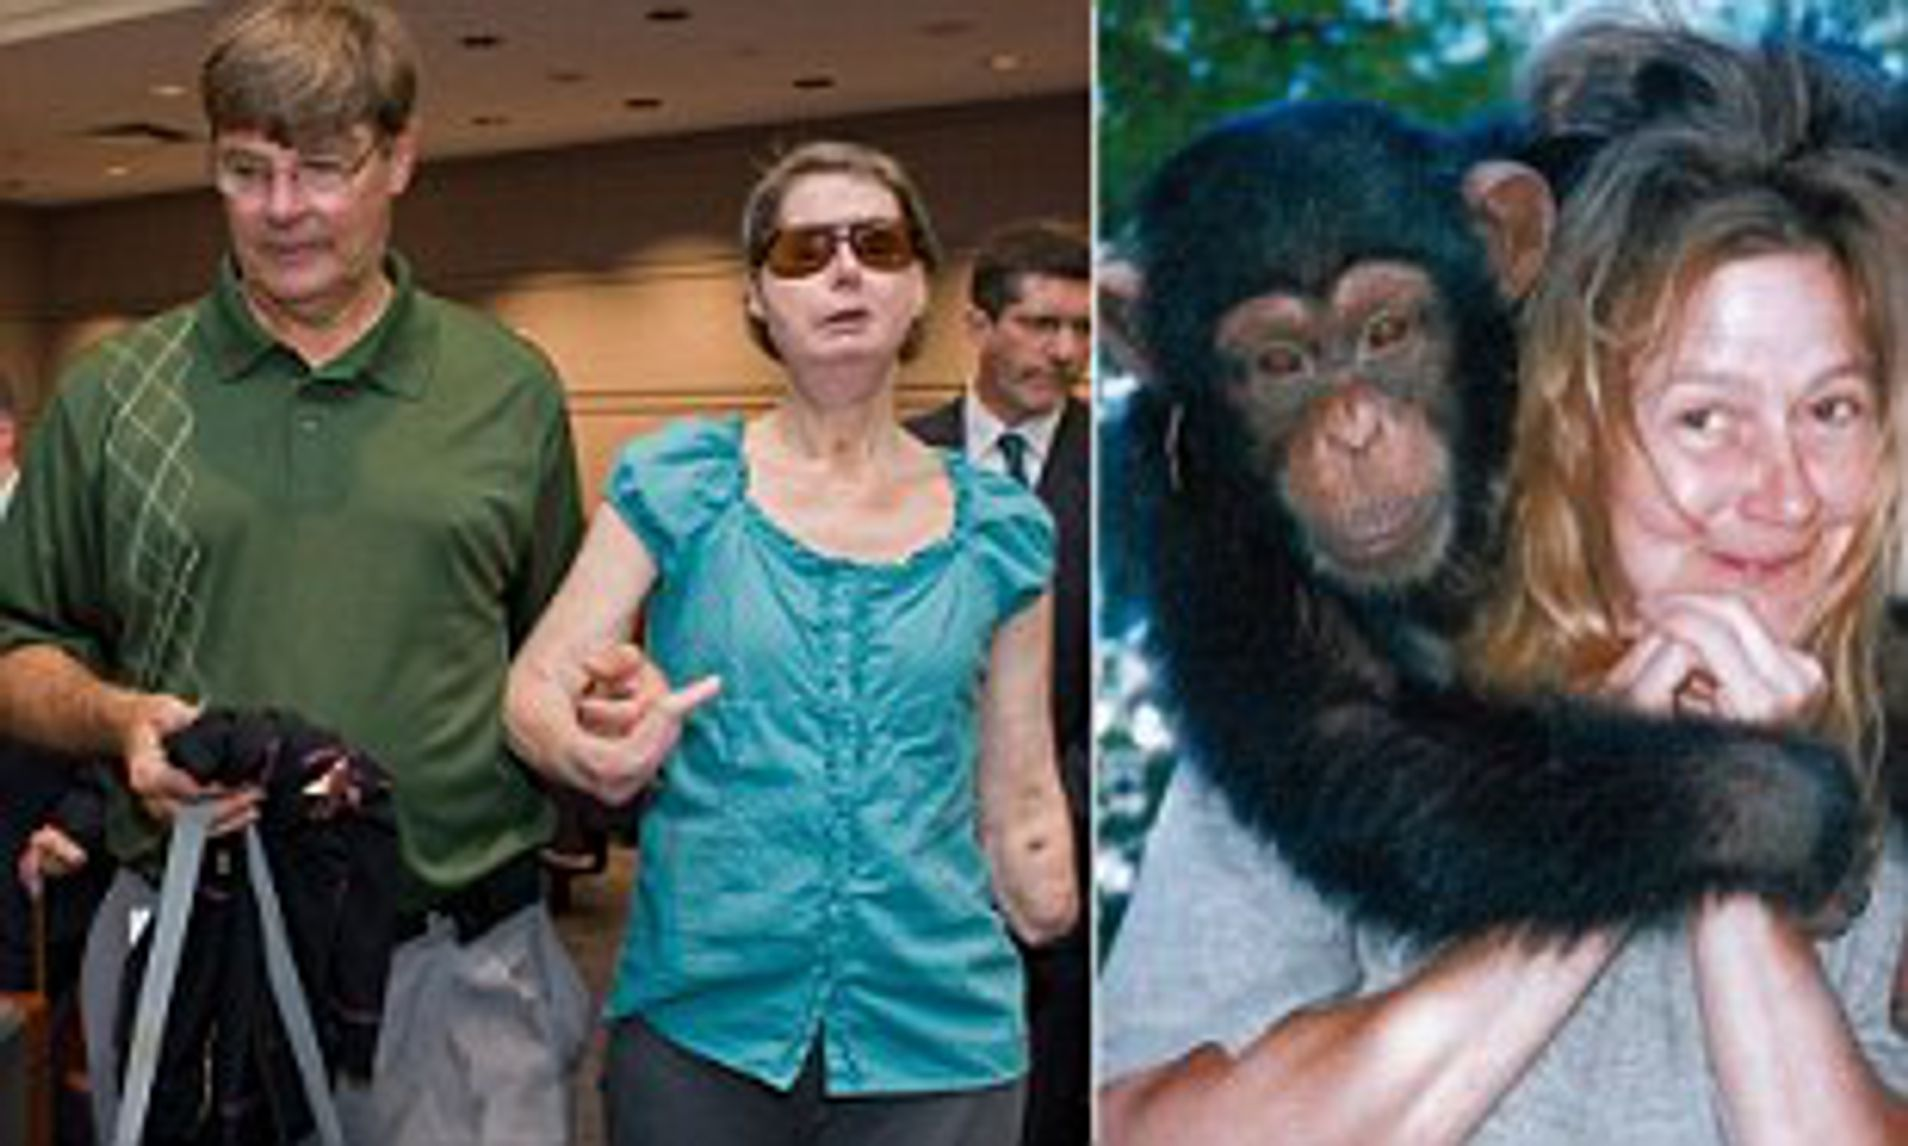 Charla Nash Lawsuit Owner Of Chimp Describes Bizarre Life With Chimp As Court Battle Begins Daily Mail Online